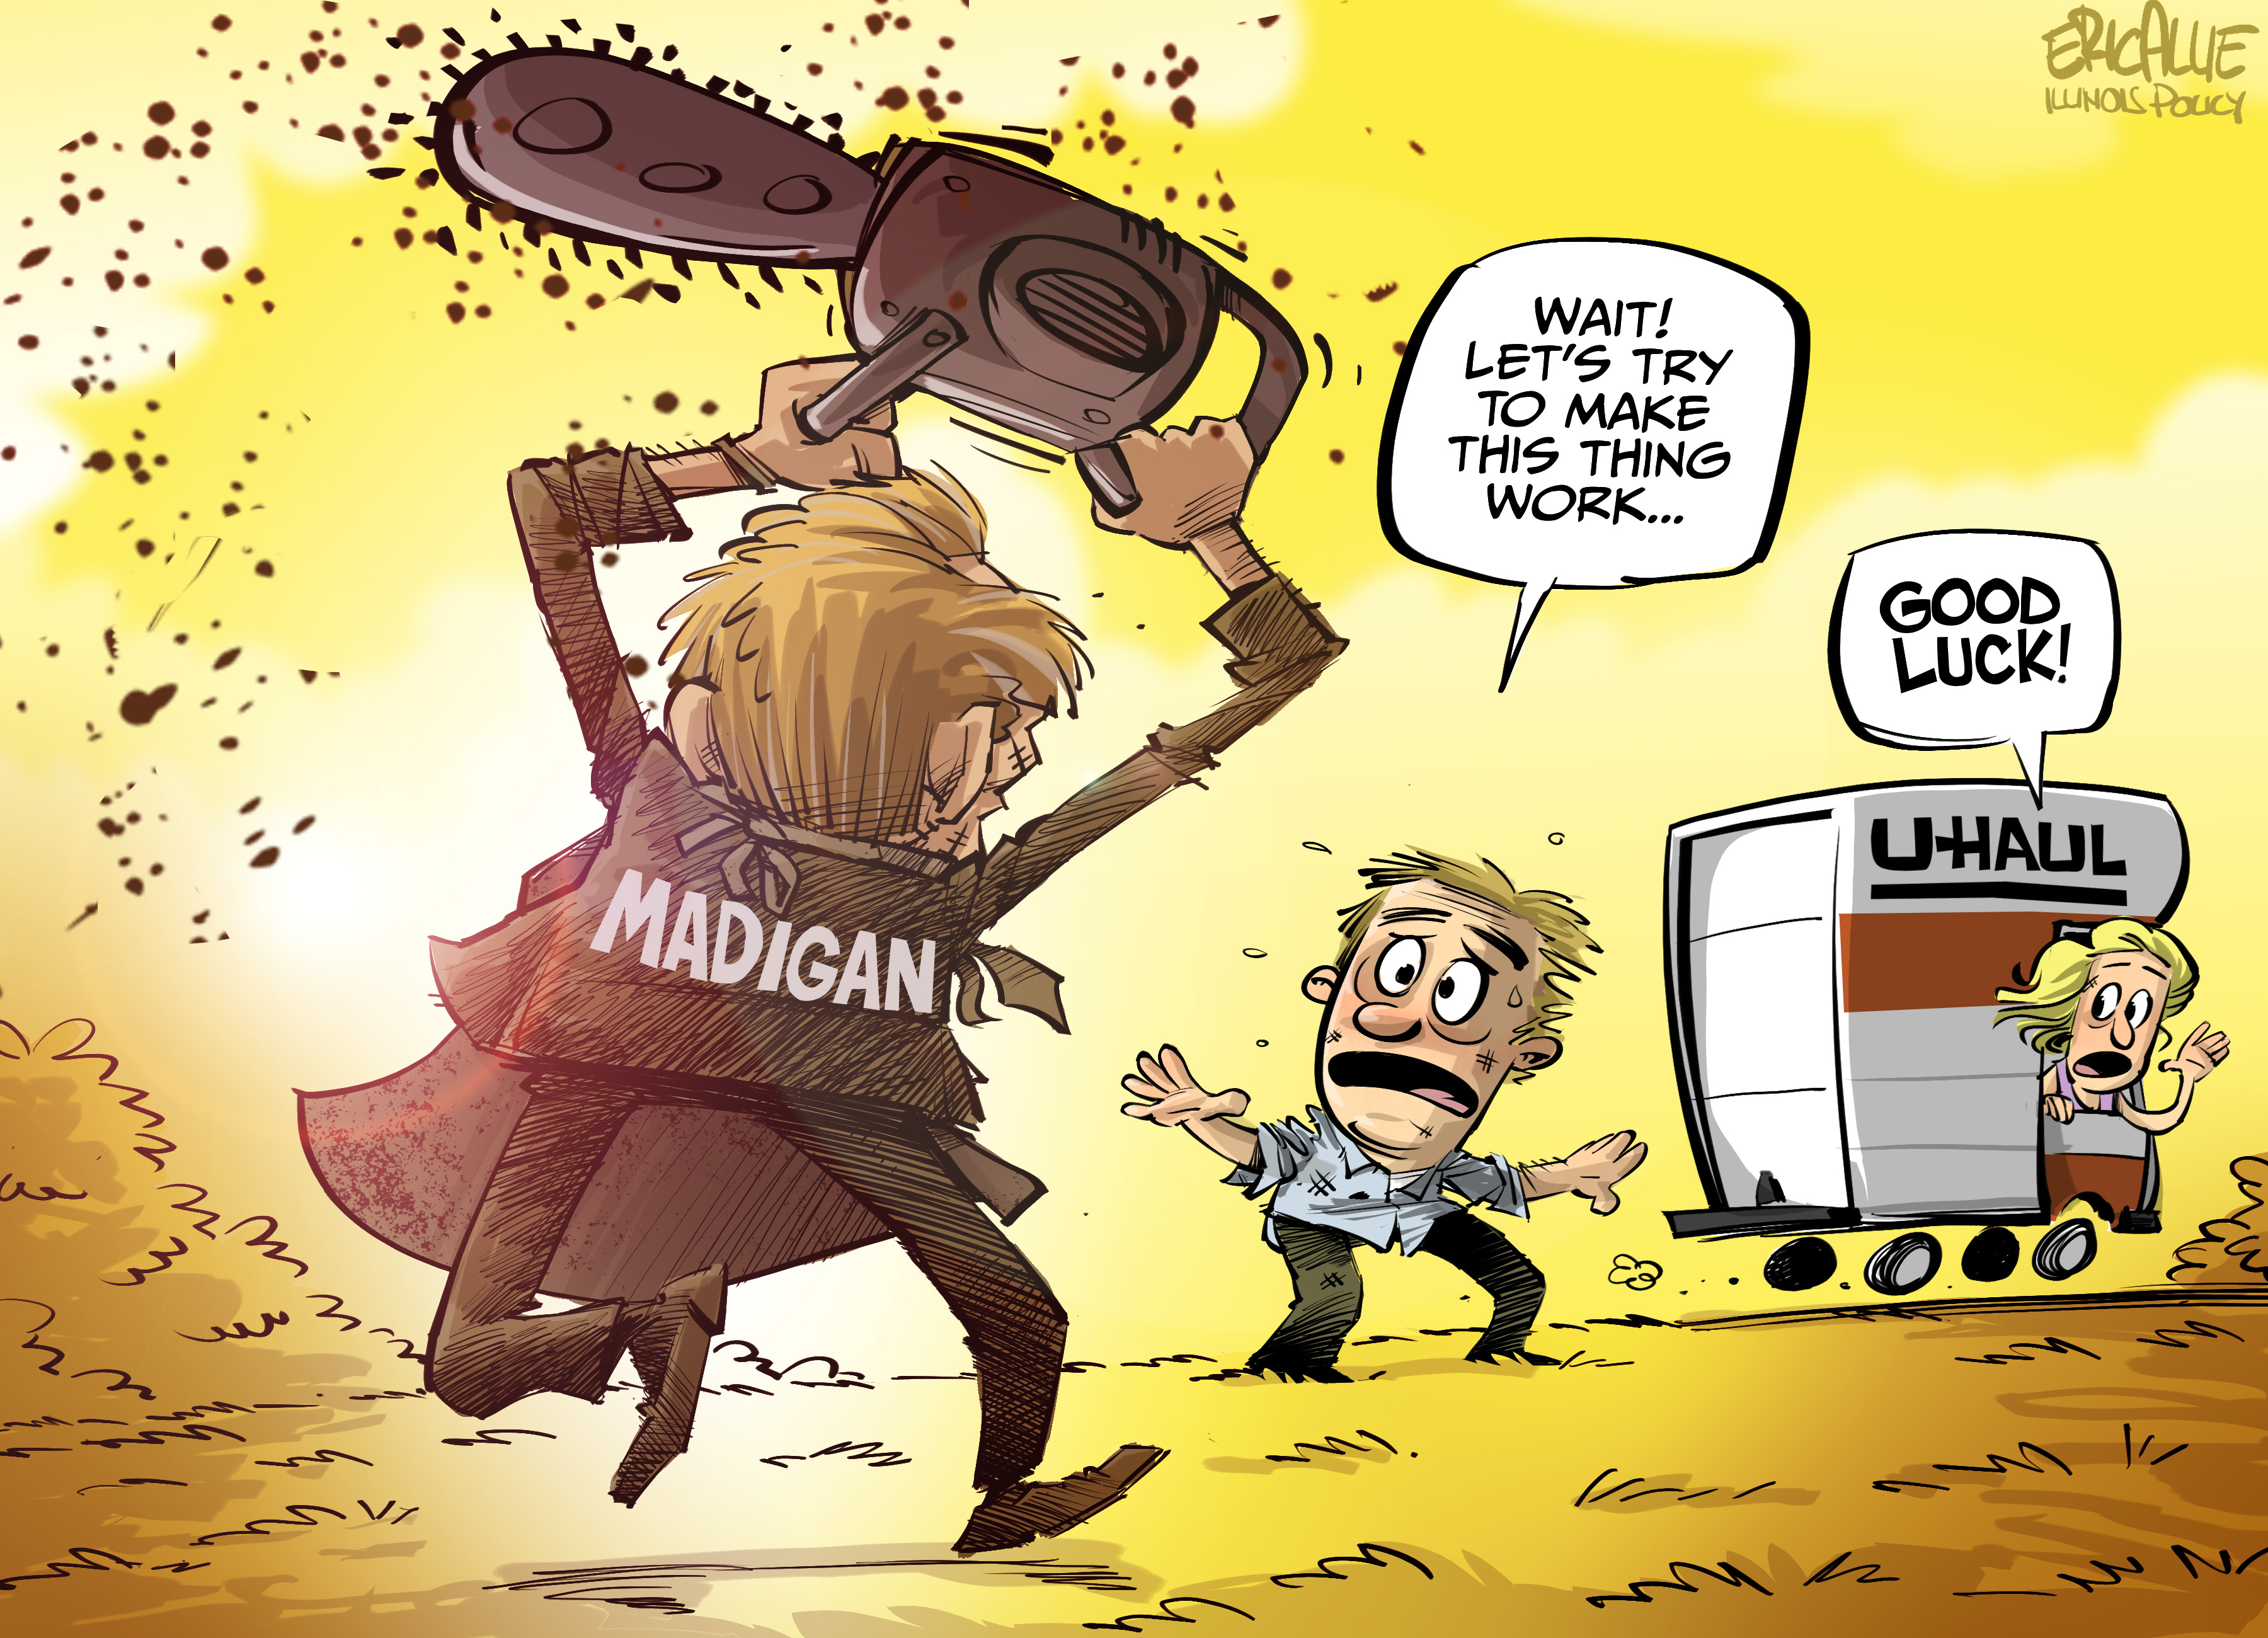 Madigan's Illinois chainsaw massacre